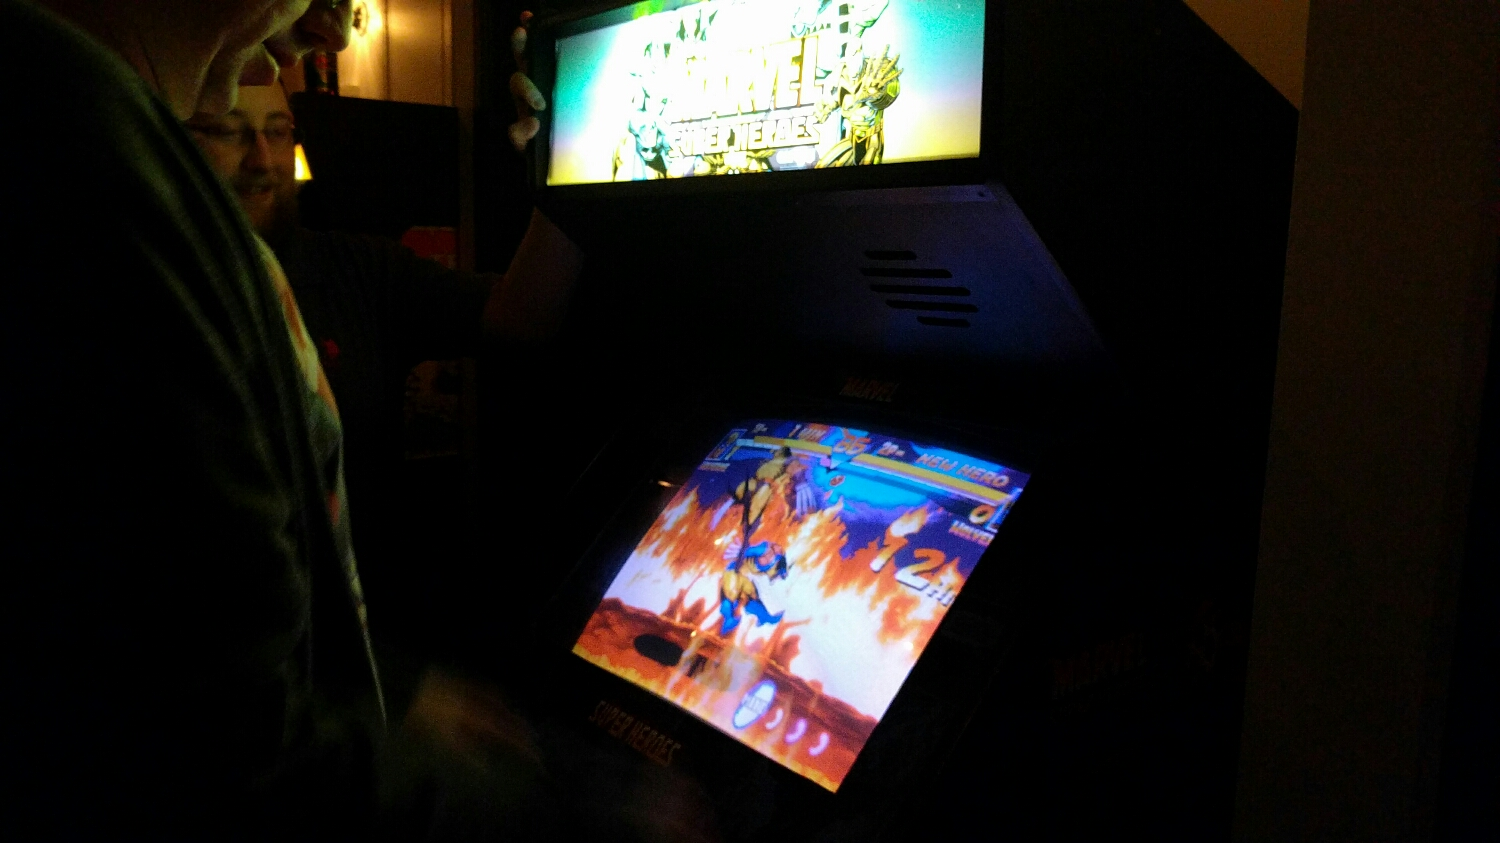 arcade mtl - street fighter - montreal bar - barcade - mygirlmontreal - montreal blog